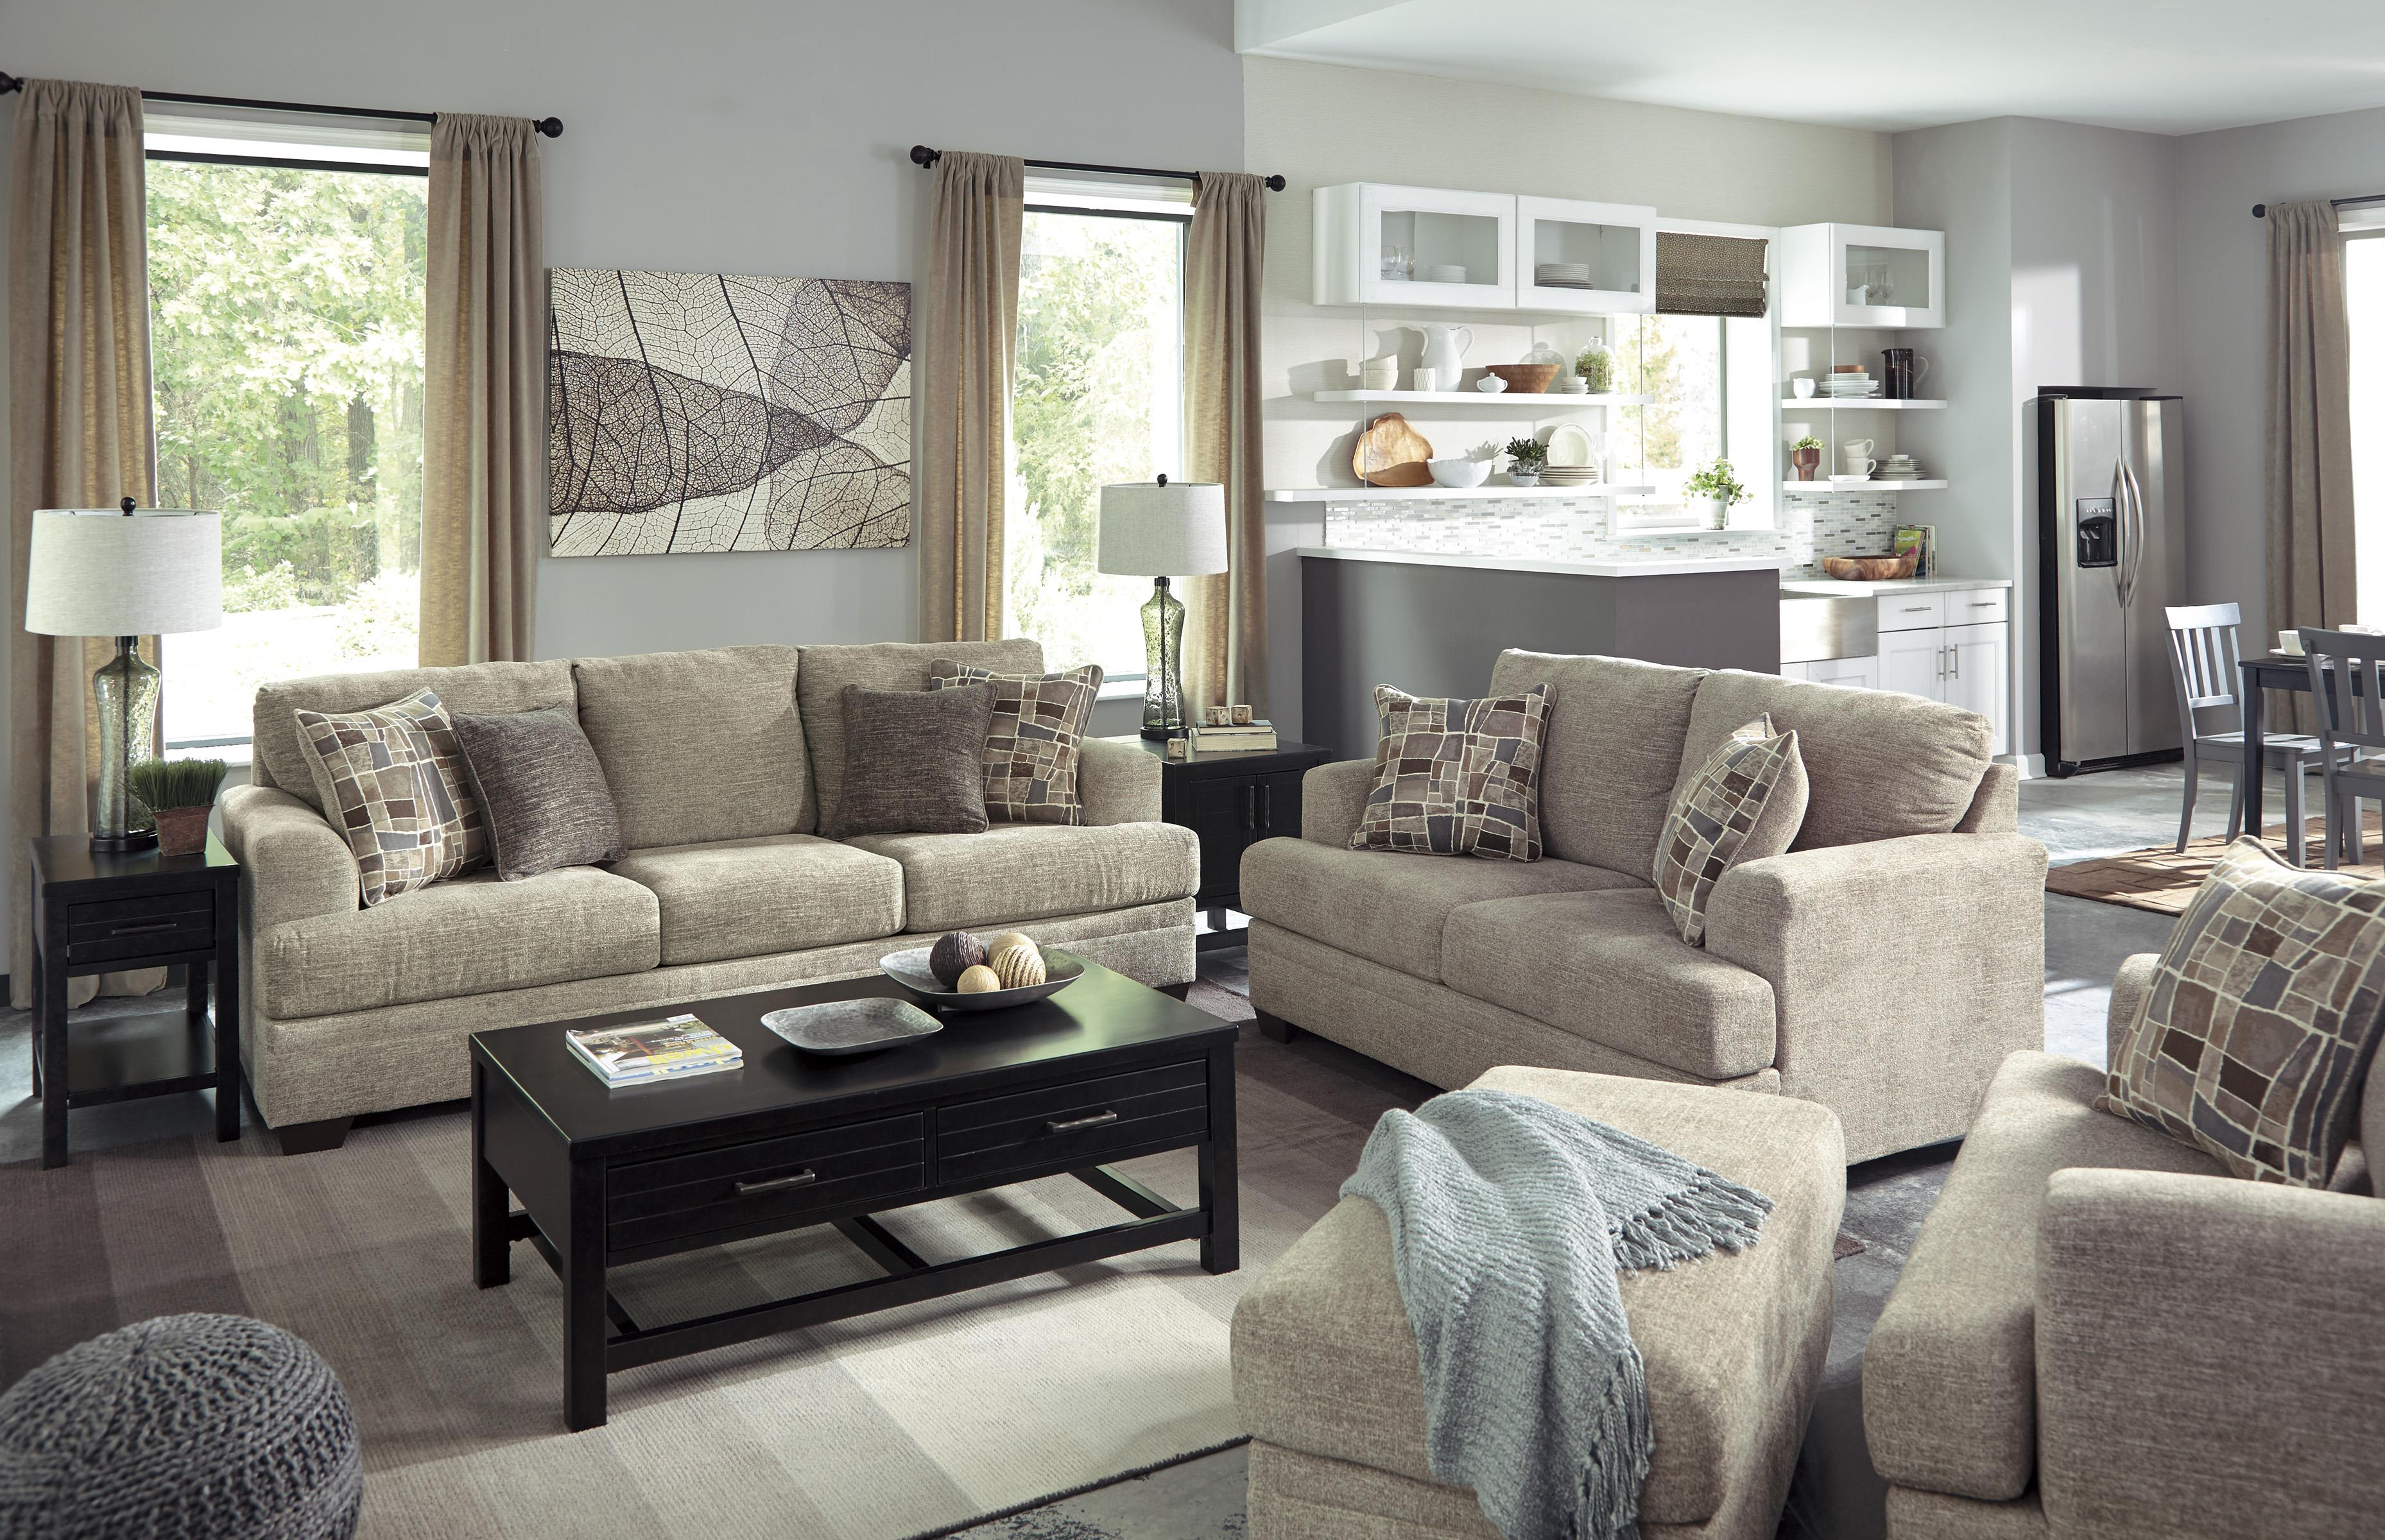 benchcraft barrish stationary living room group northeast factory direct upholstery group. Black Bedroom Furniture Sets. Home Design Ideas